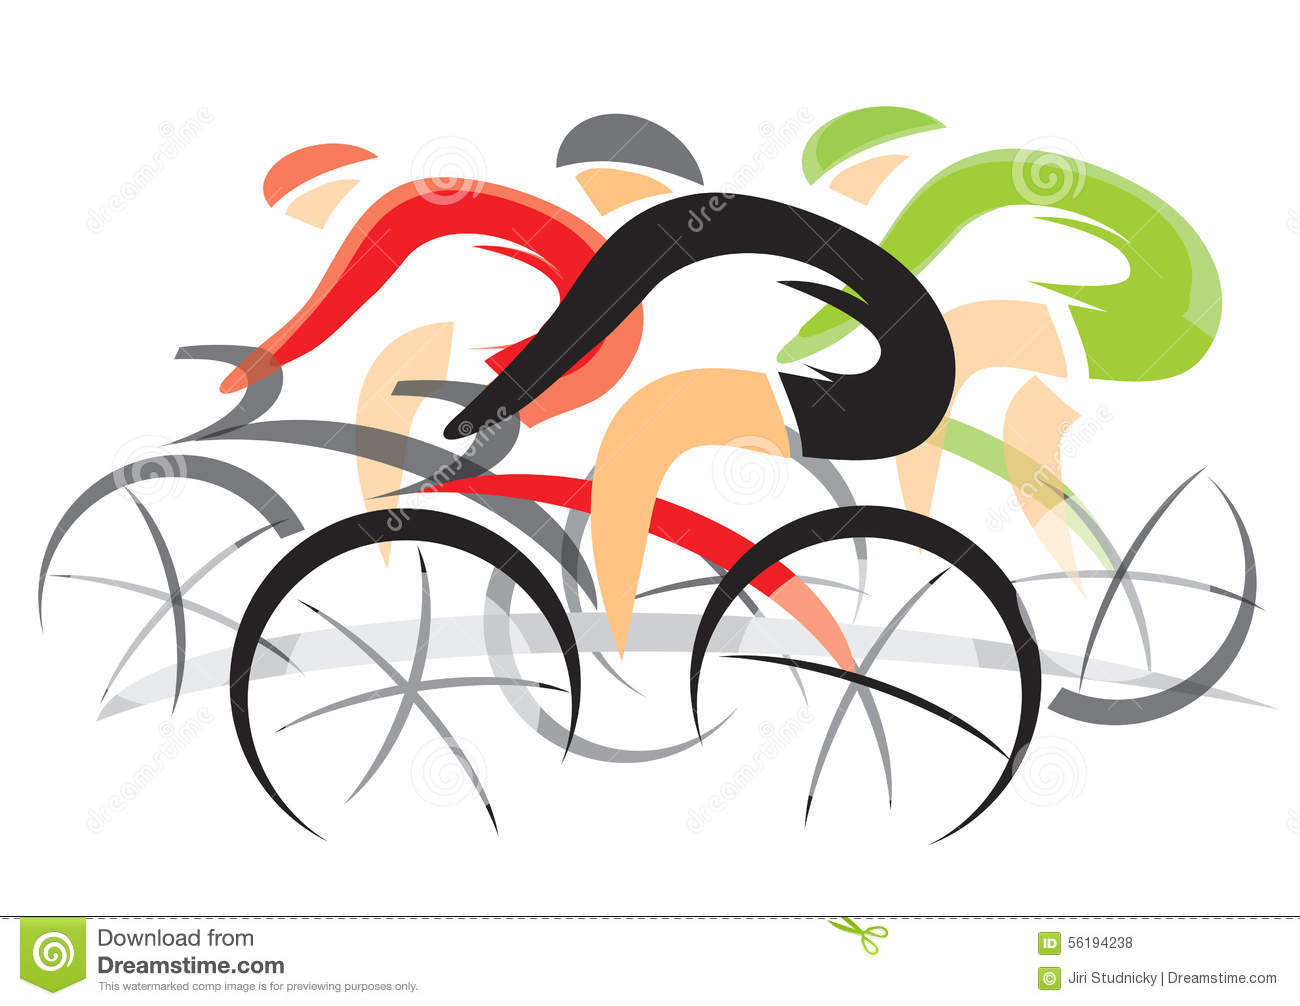 Racing Bicycle Clipart Bicycle Race Stock Vector Illustration Of Racing Green